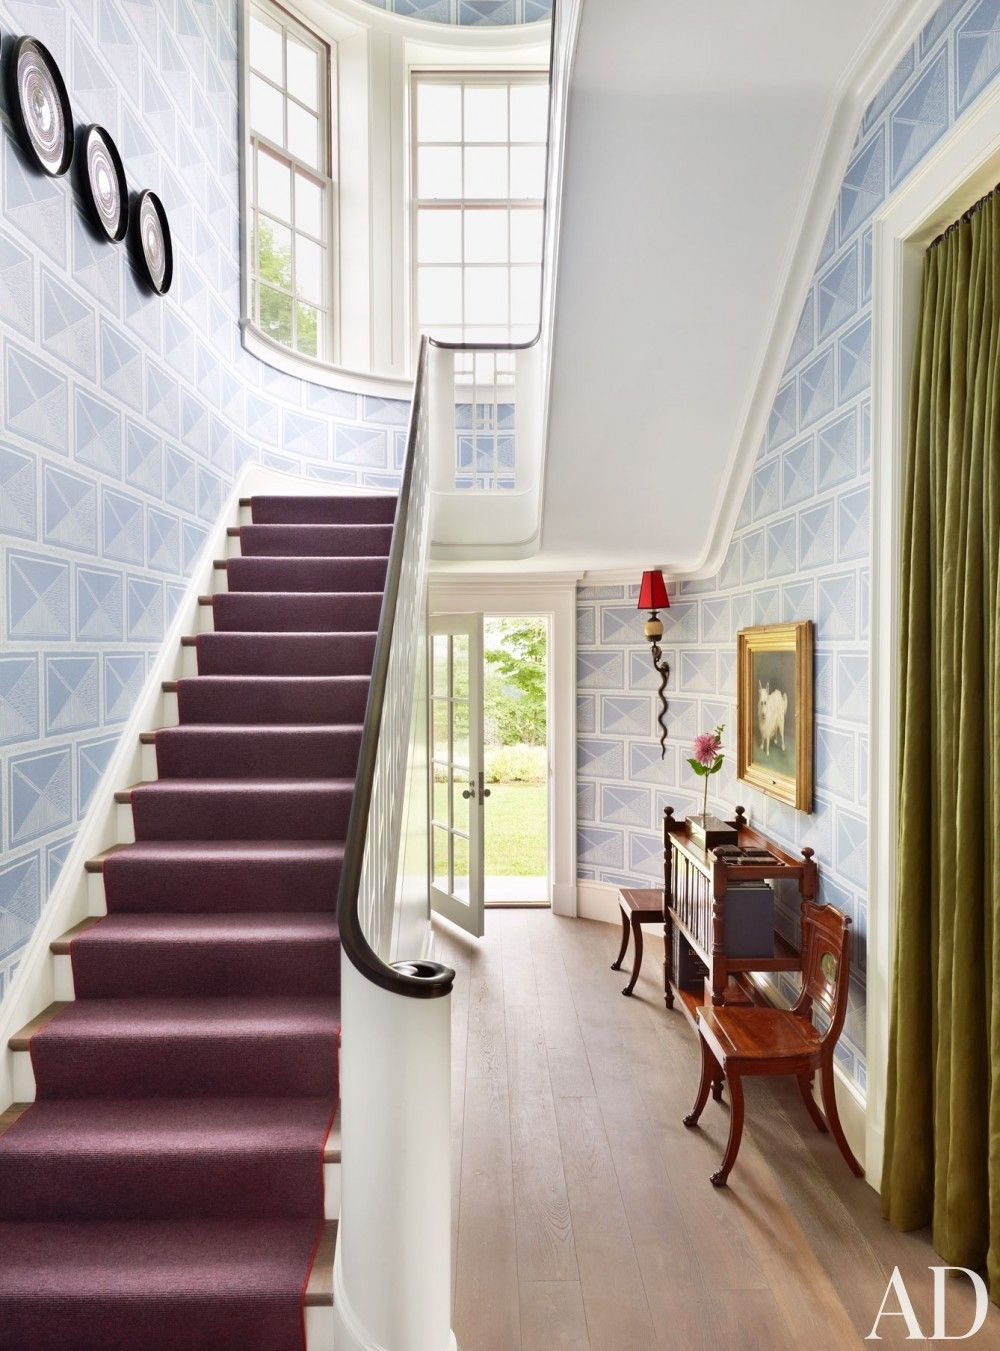 The stair hall\'s sgraffito-inspired wall covering is a Katie Ridder ...